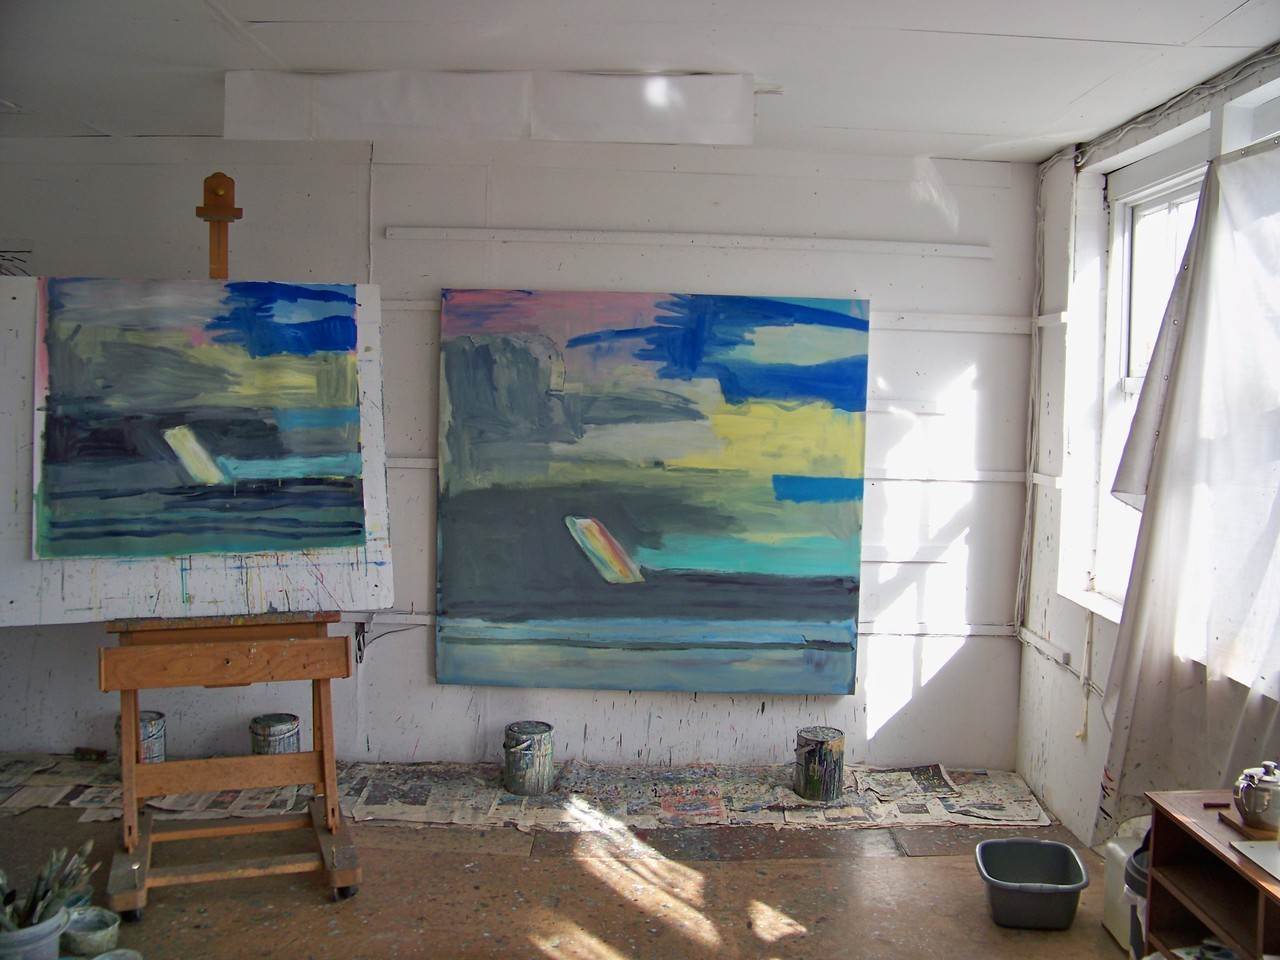 In the studio again this morning after a day doing galleries in London yesterday.